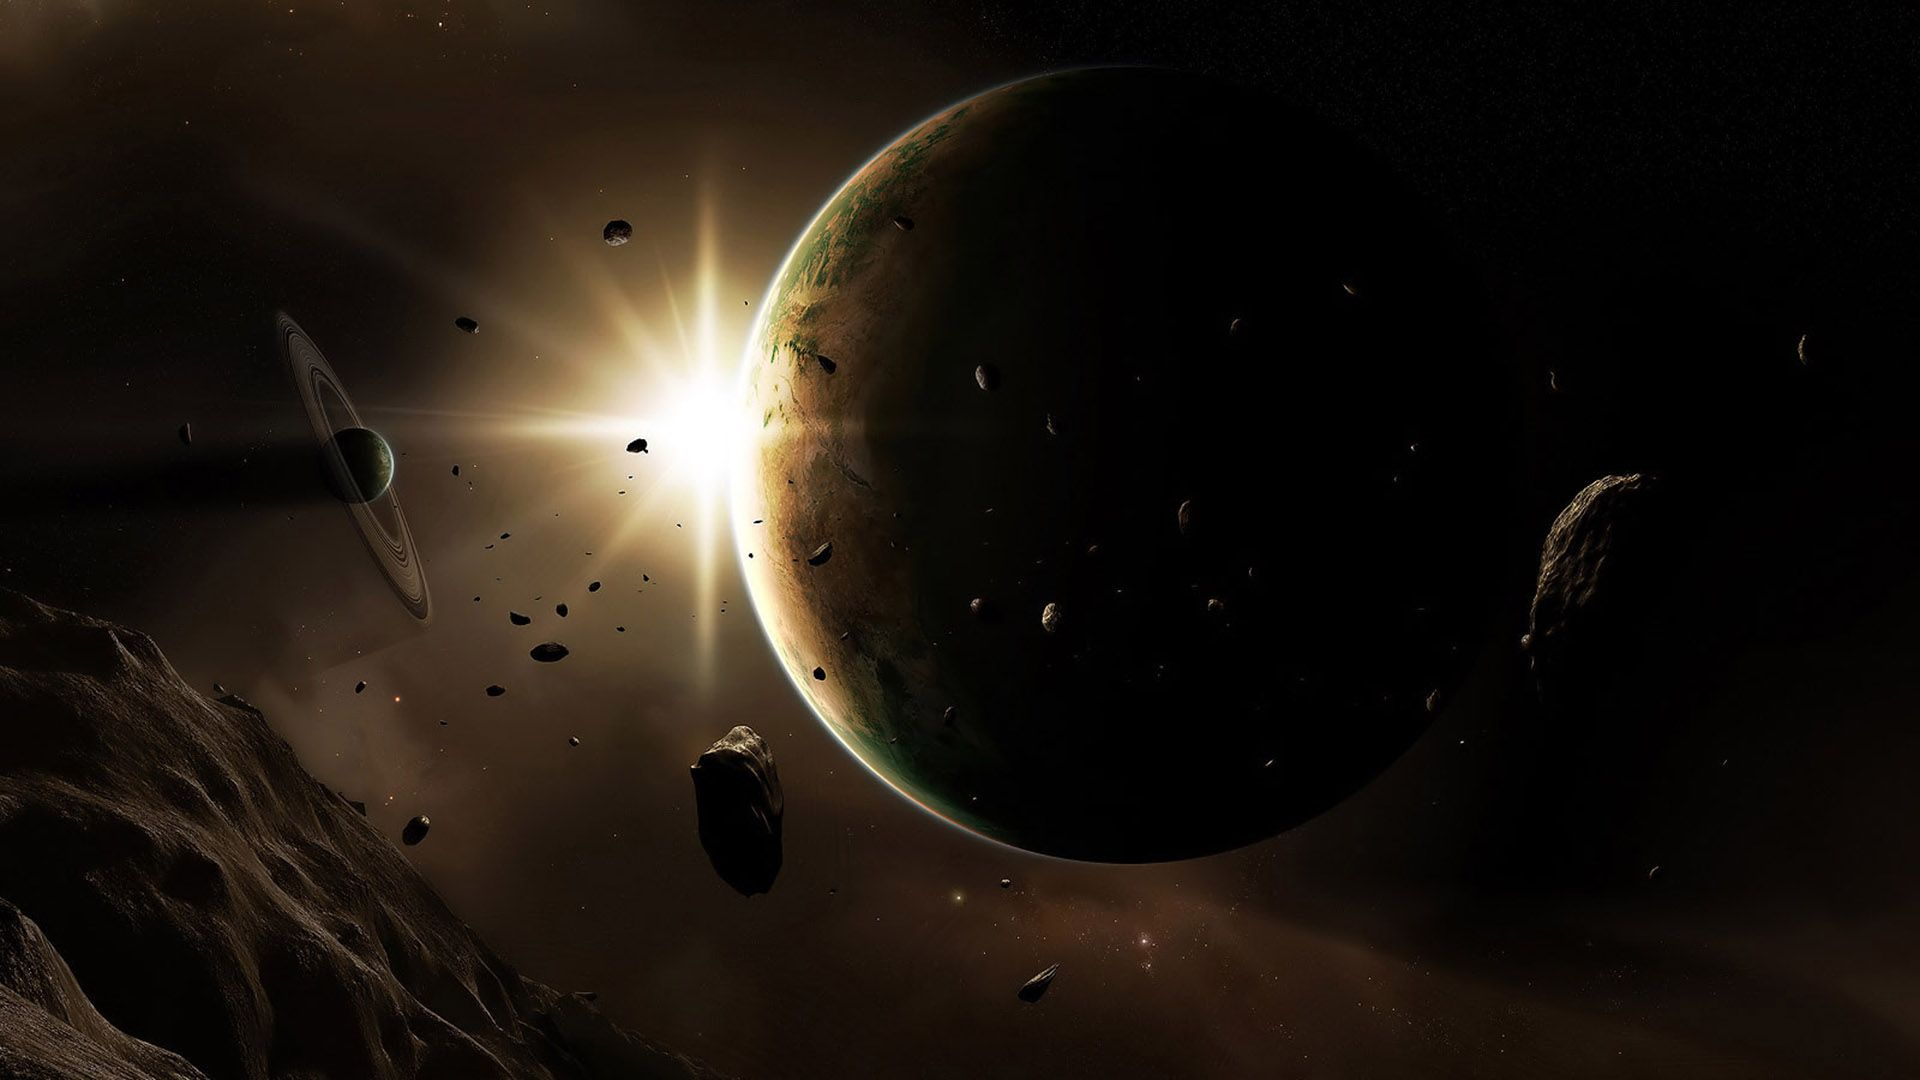 Planet HD 1080 wallpaper